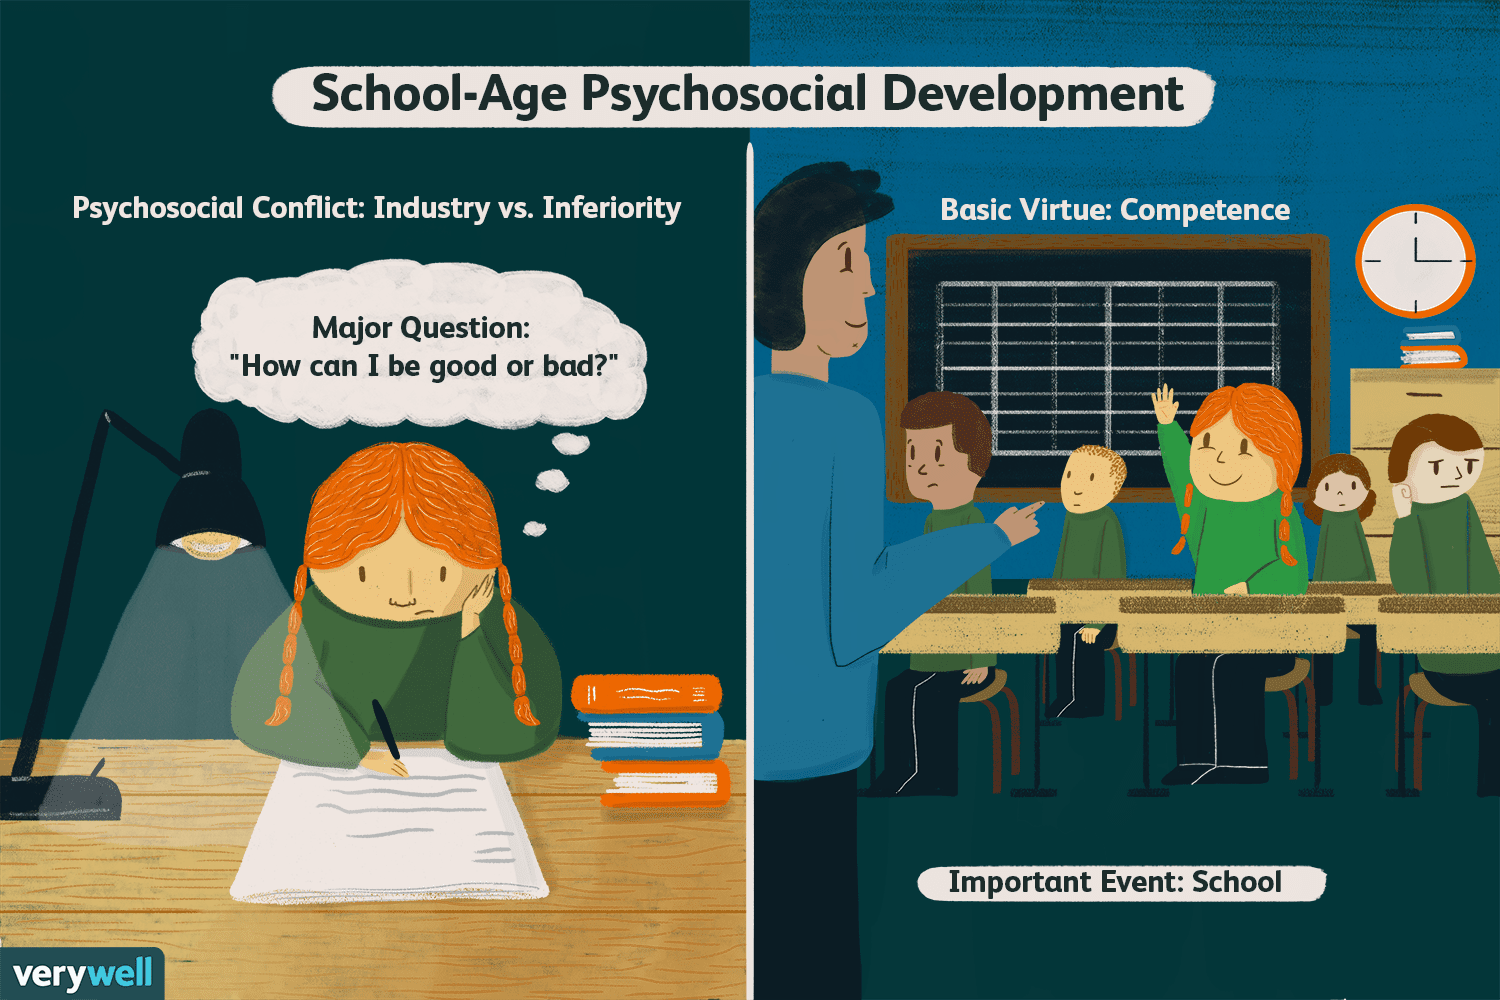 Therapy clipart psychosocial. Industry vs inferiority in